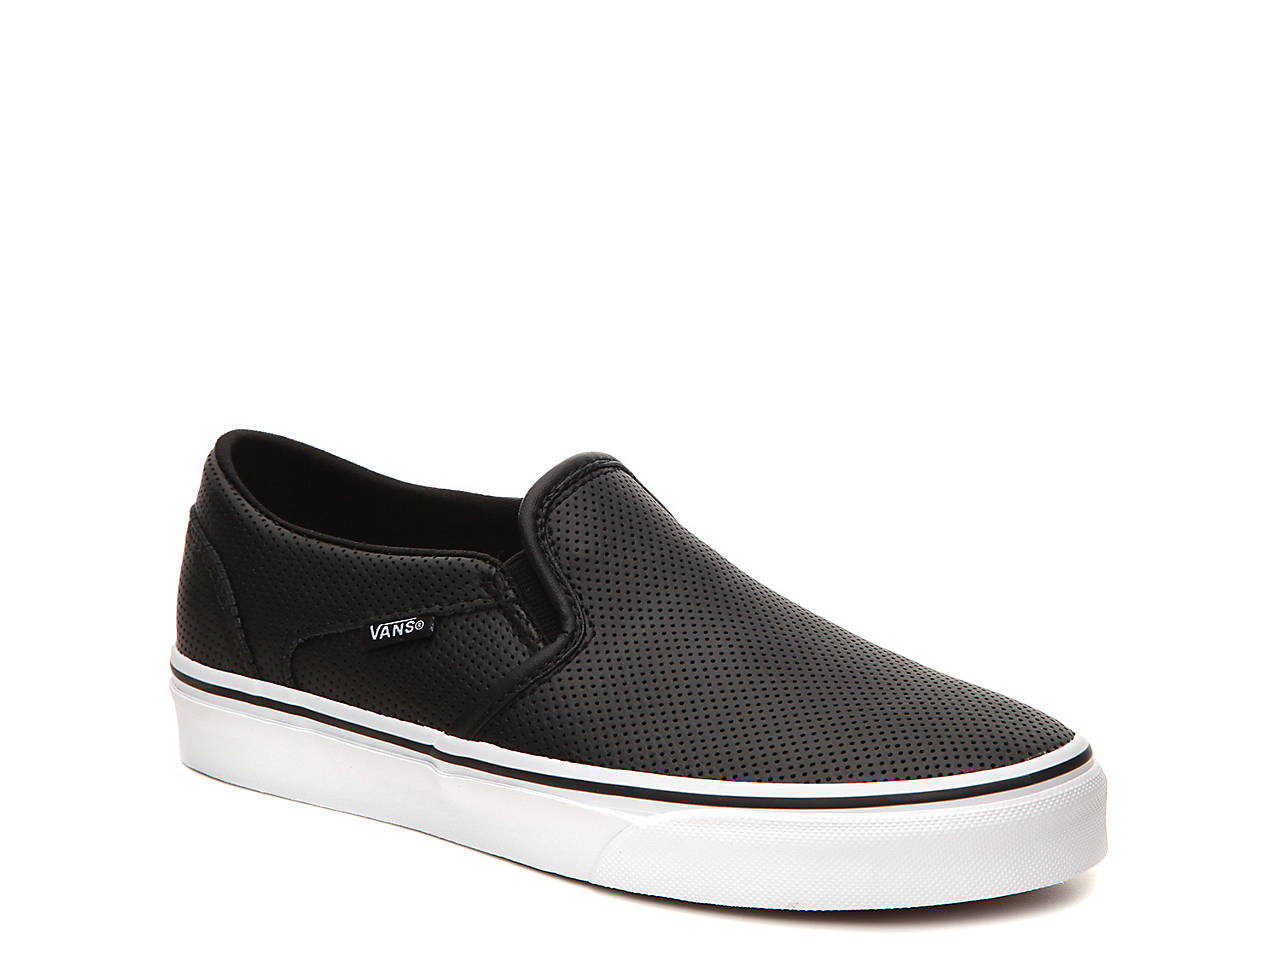 Vans Asher Perforated Slip-On Sneaker - Women s Women s Shoes  0ec238ea09